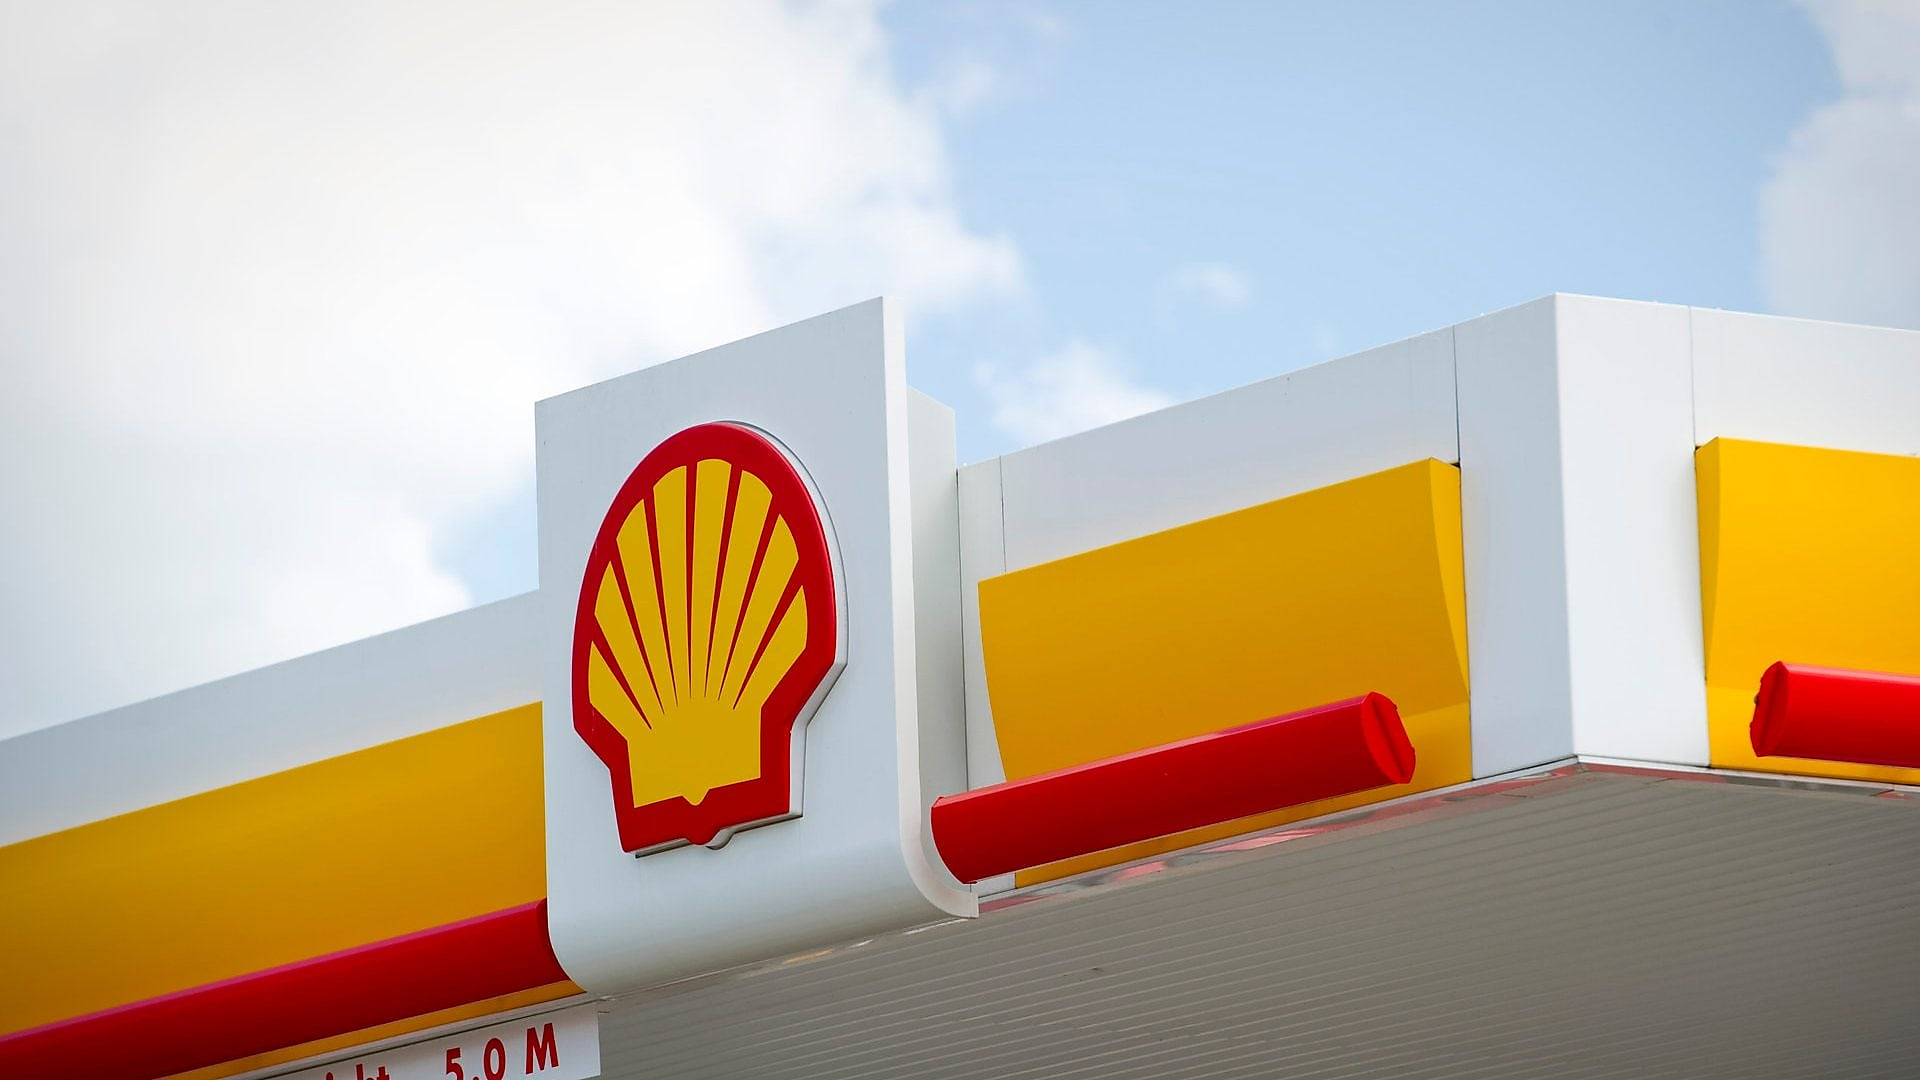 Shell Unleaded Fuels